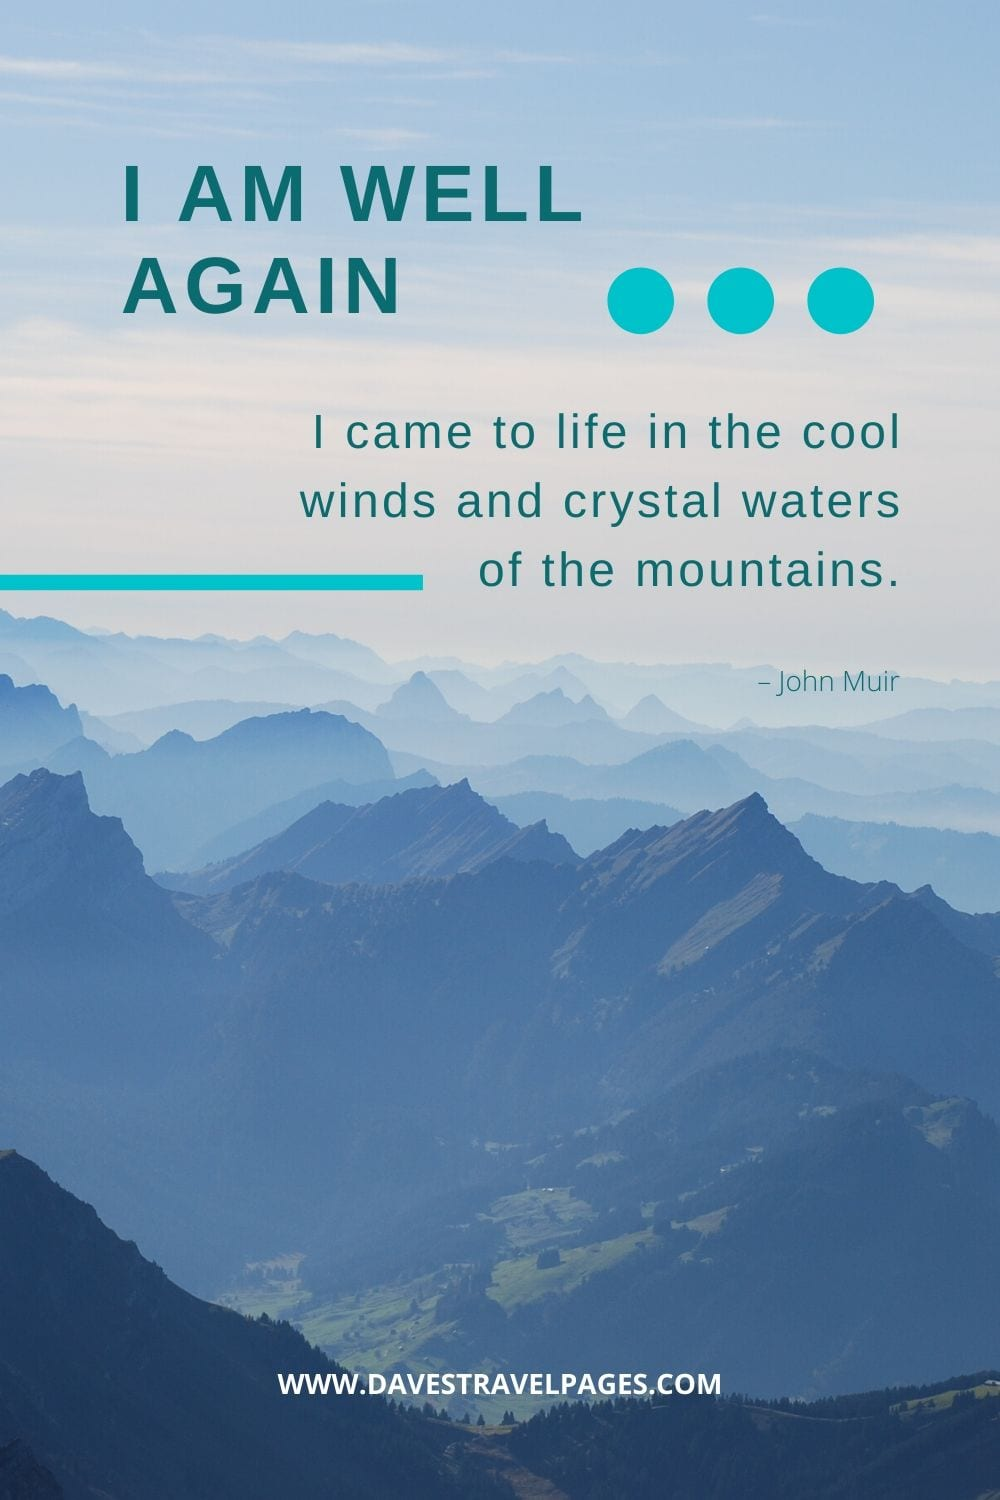 Wilderness quote by John Muir - I came to life in the cool winds and crystal waters of the mountains.